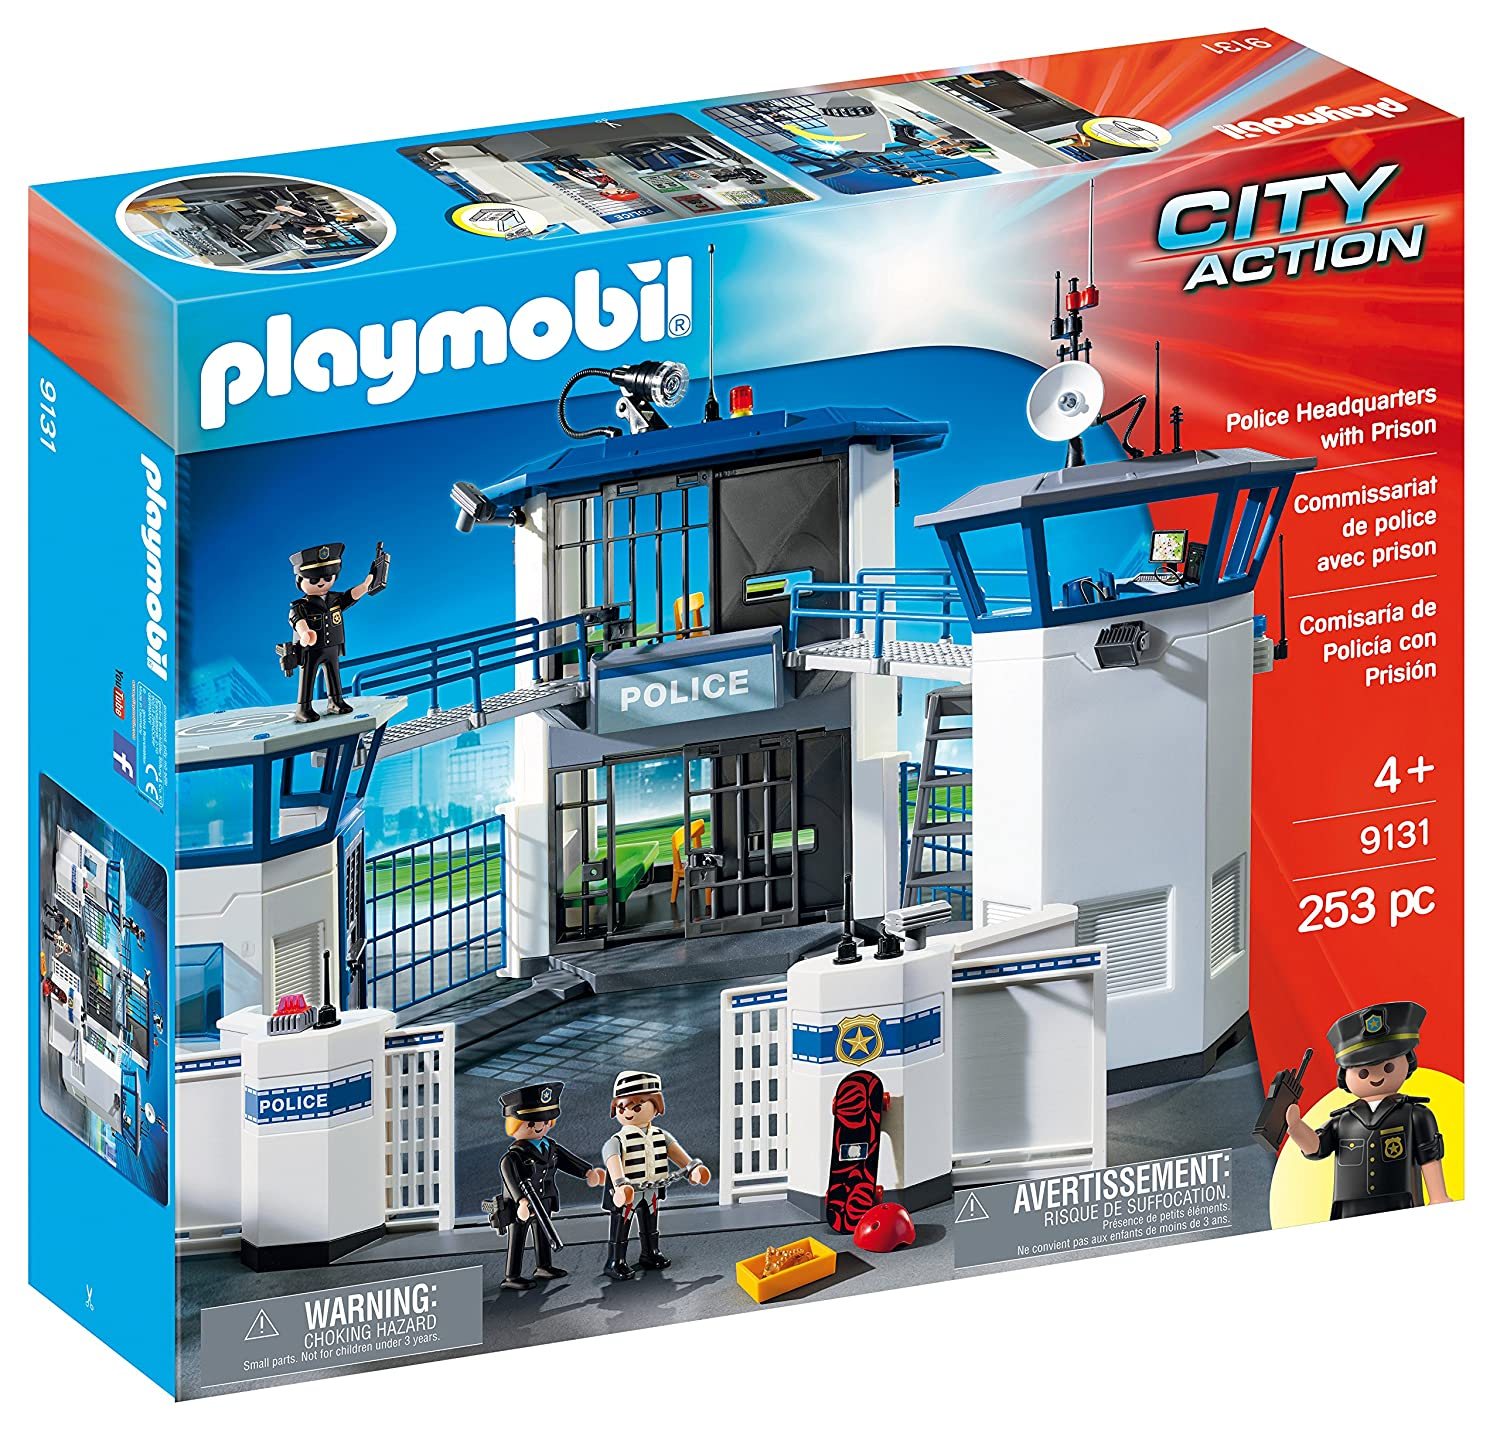 PLAYMOBIL® Police Headquarters with Prison Playmobil - Cranbury 9131